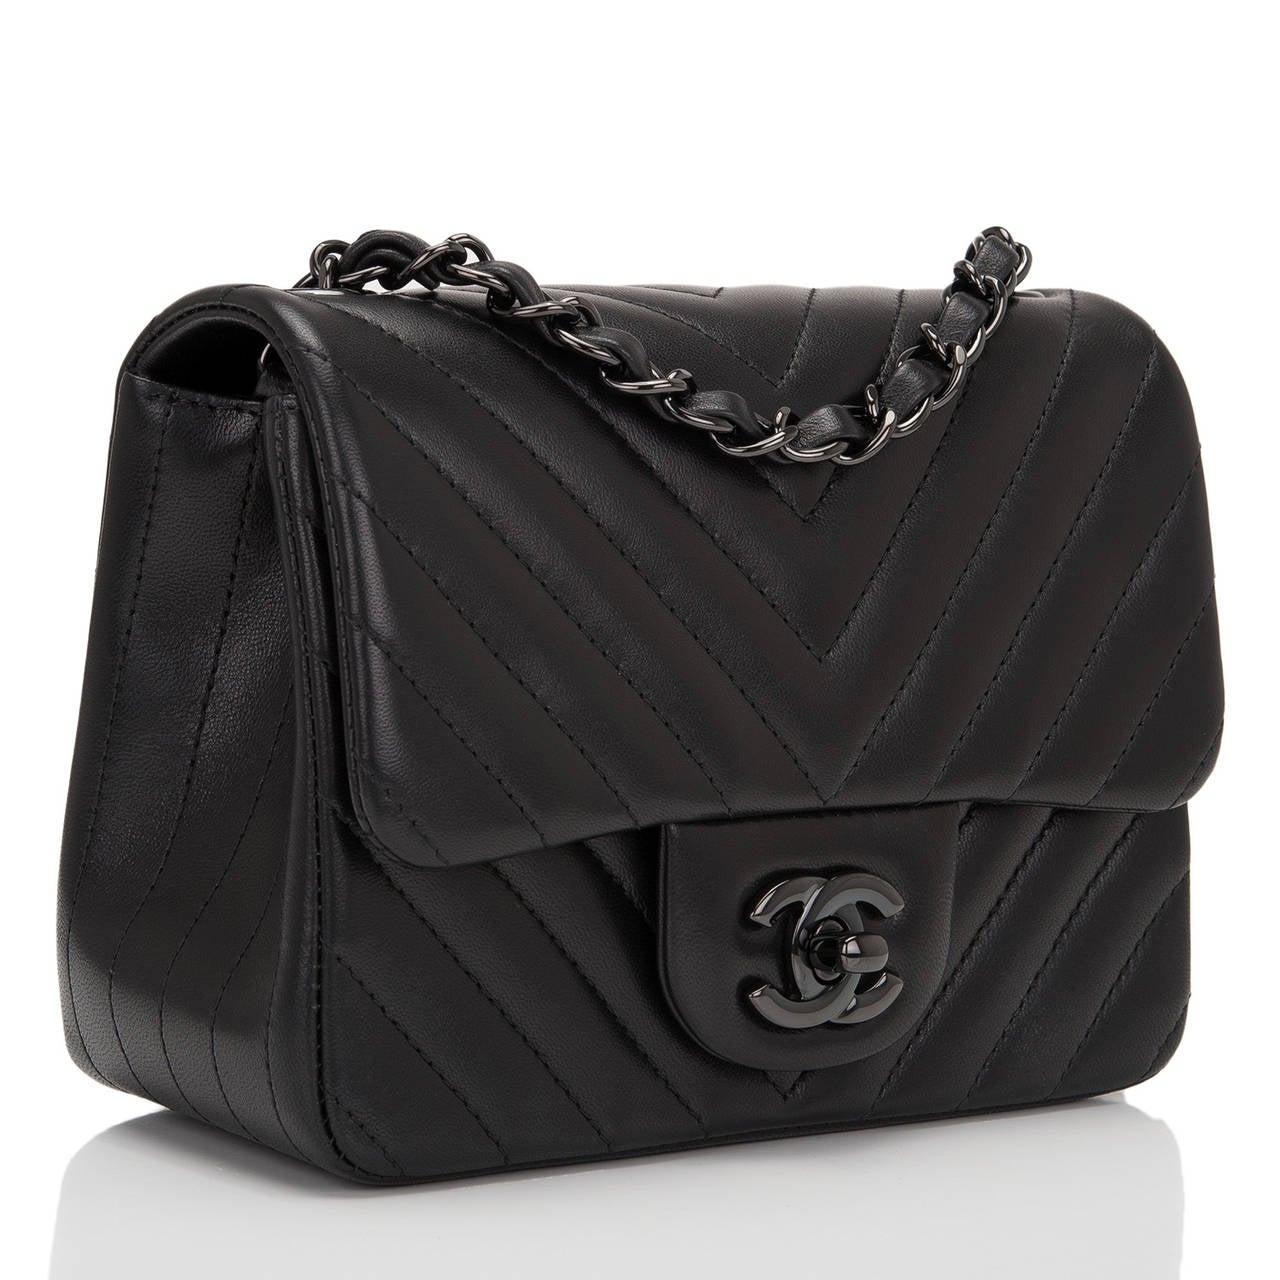 Chanel So Black Chevron Mini Flap Bag At 1stdibs